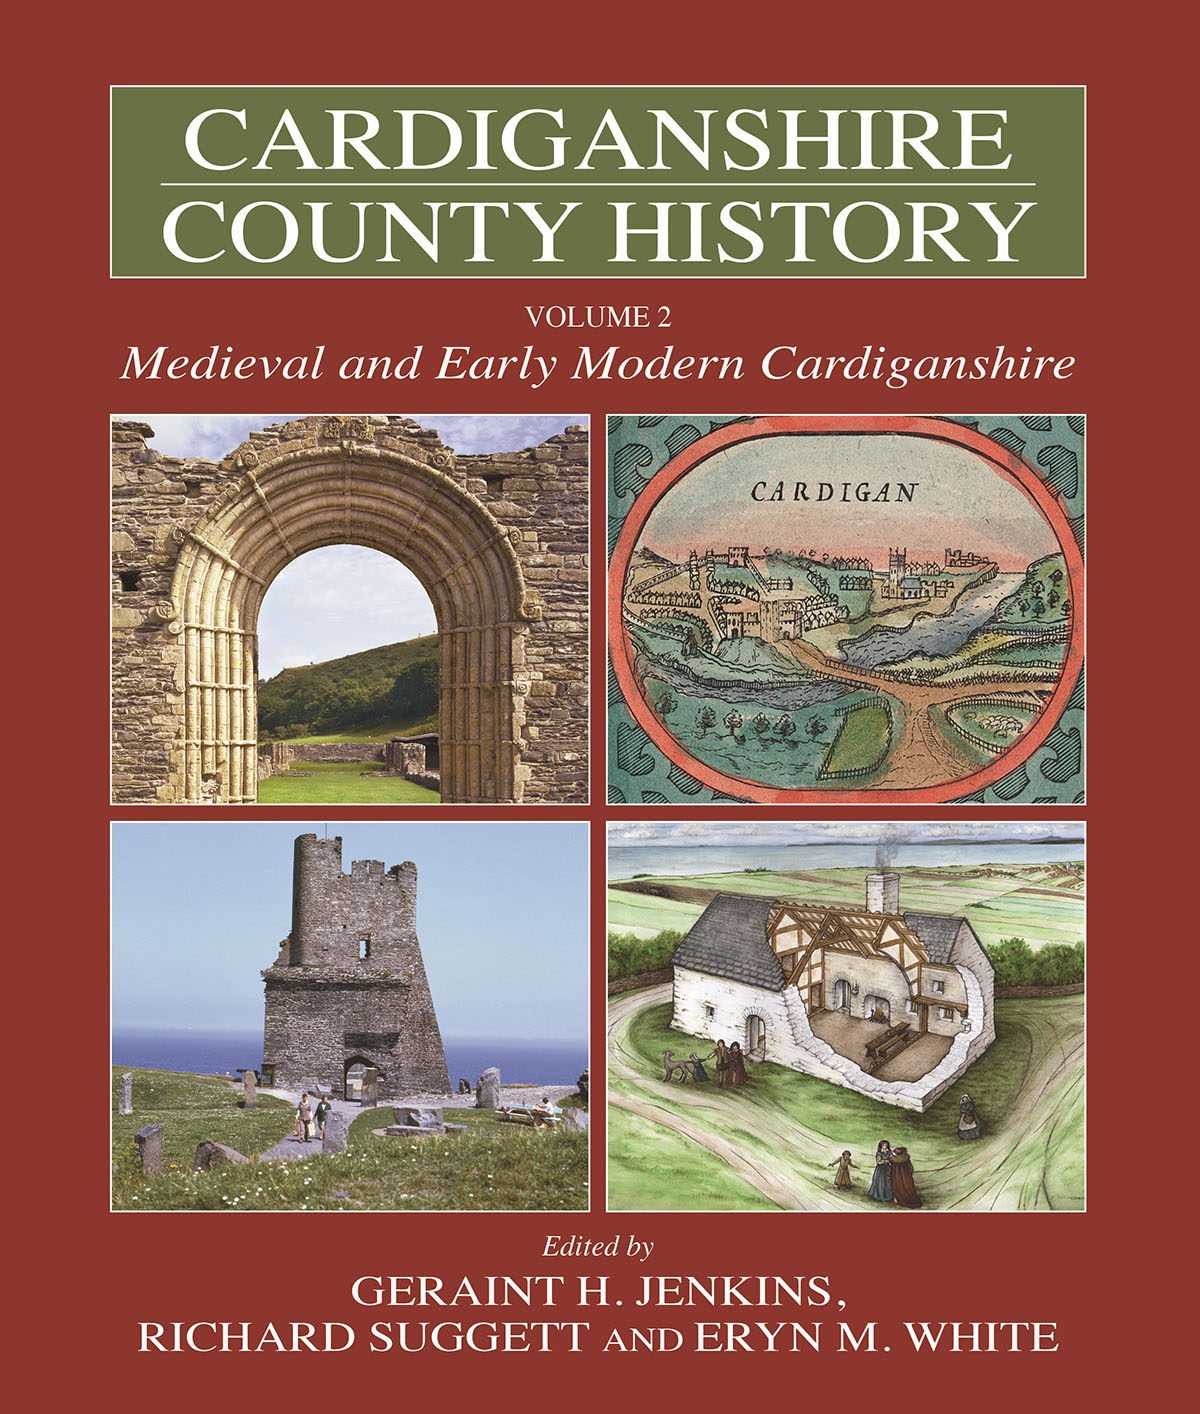 Cardiganshire County History Vol 2 - Medieval and Early Modern Cardiganshire